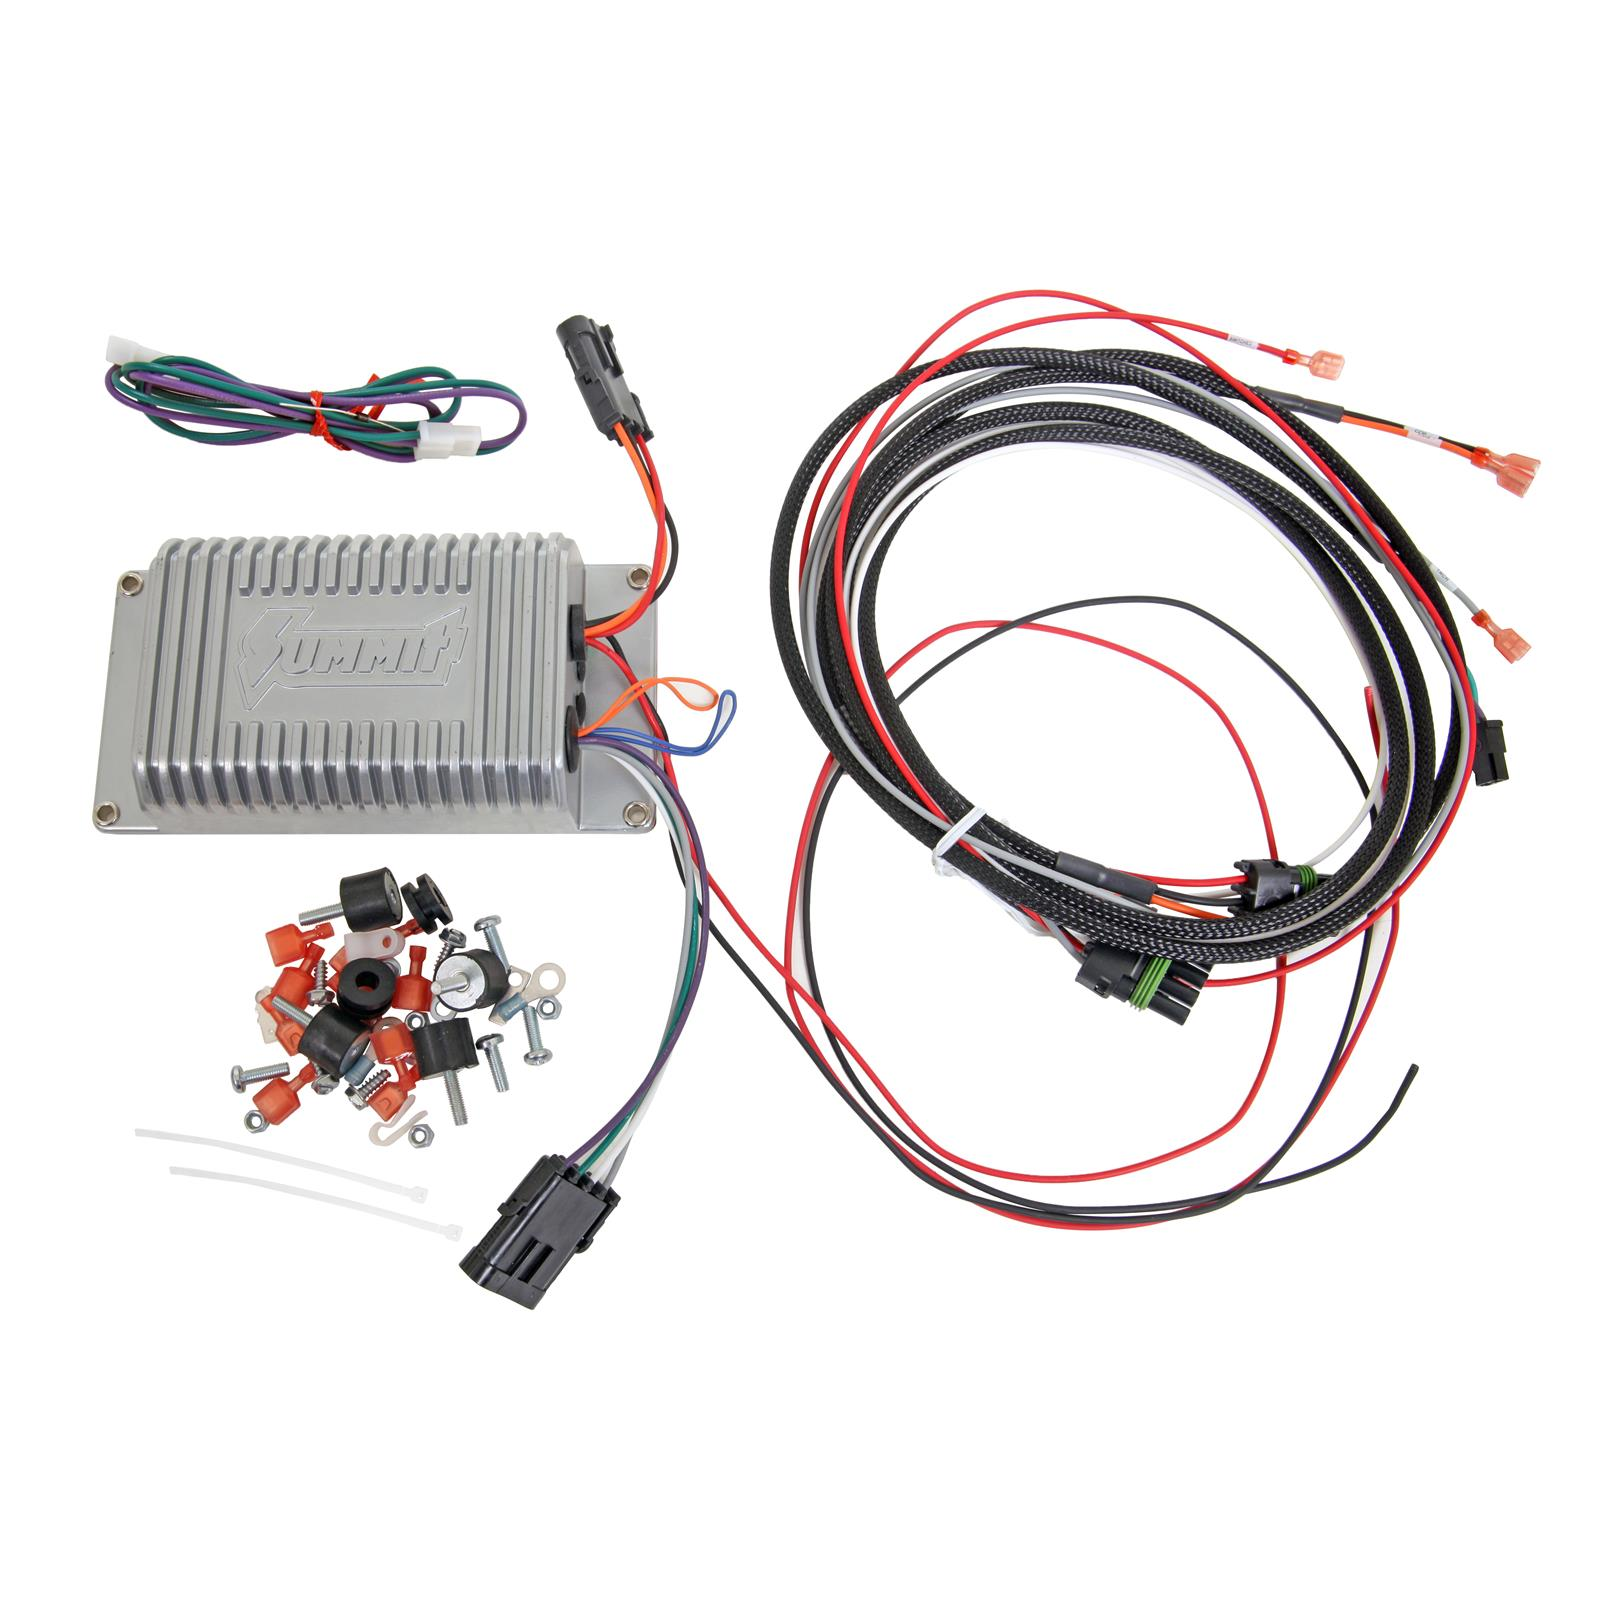 sum 850611_xl summit racing equipment� 200 mj multi spark cdi systems sum 850611 summit ignition box wiring diagram at cos-gaming.co